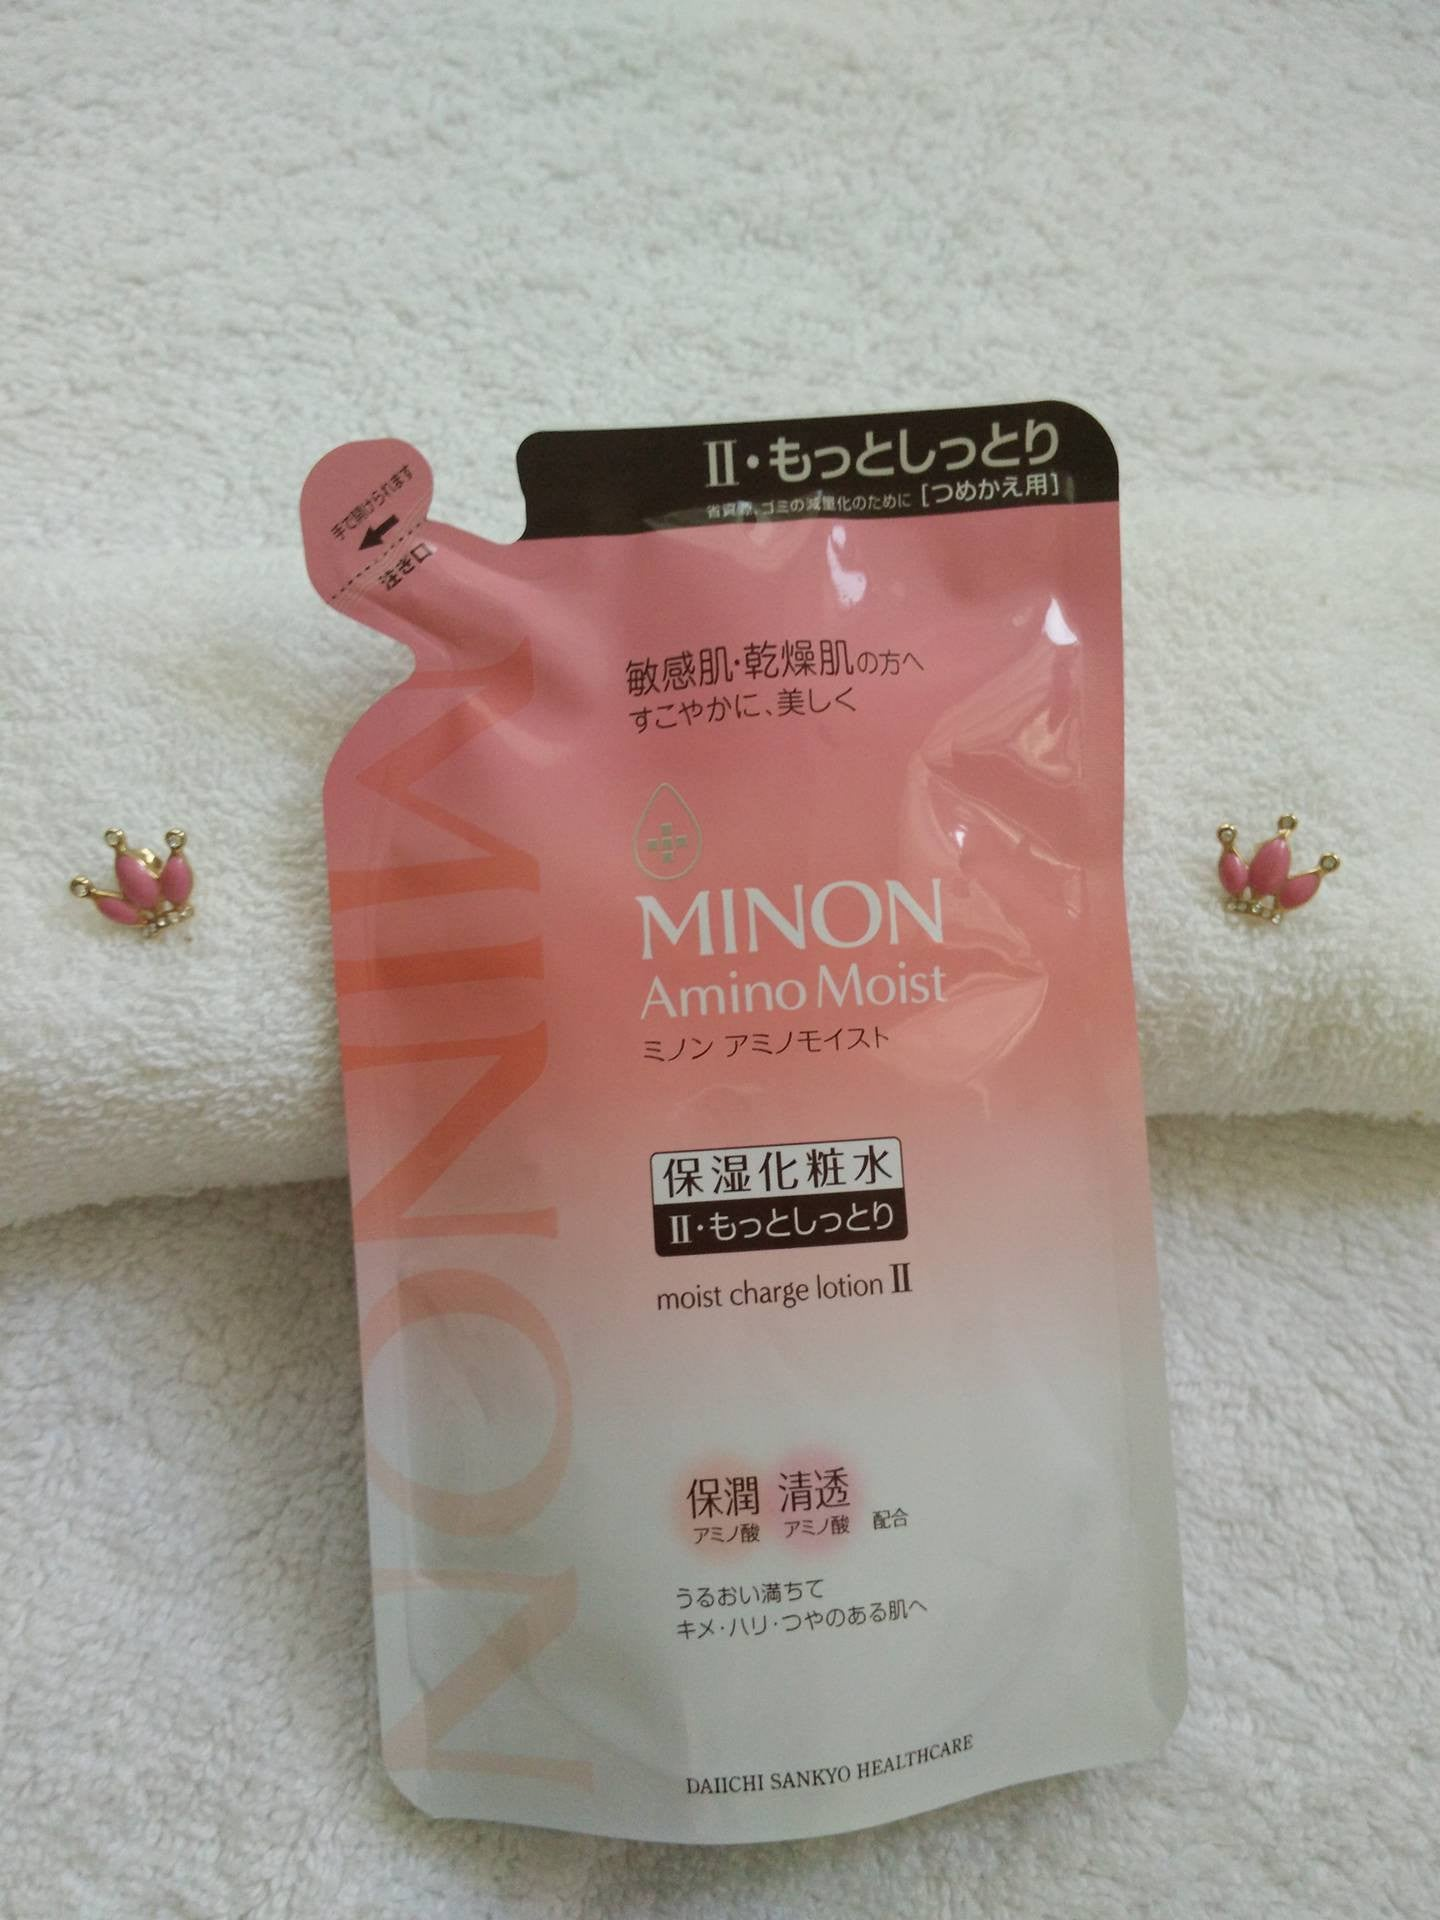 保湿化妆水(二号)(再充填袋) Minon Amino Moist Moist Charge Lotion II (Refill)